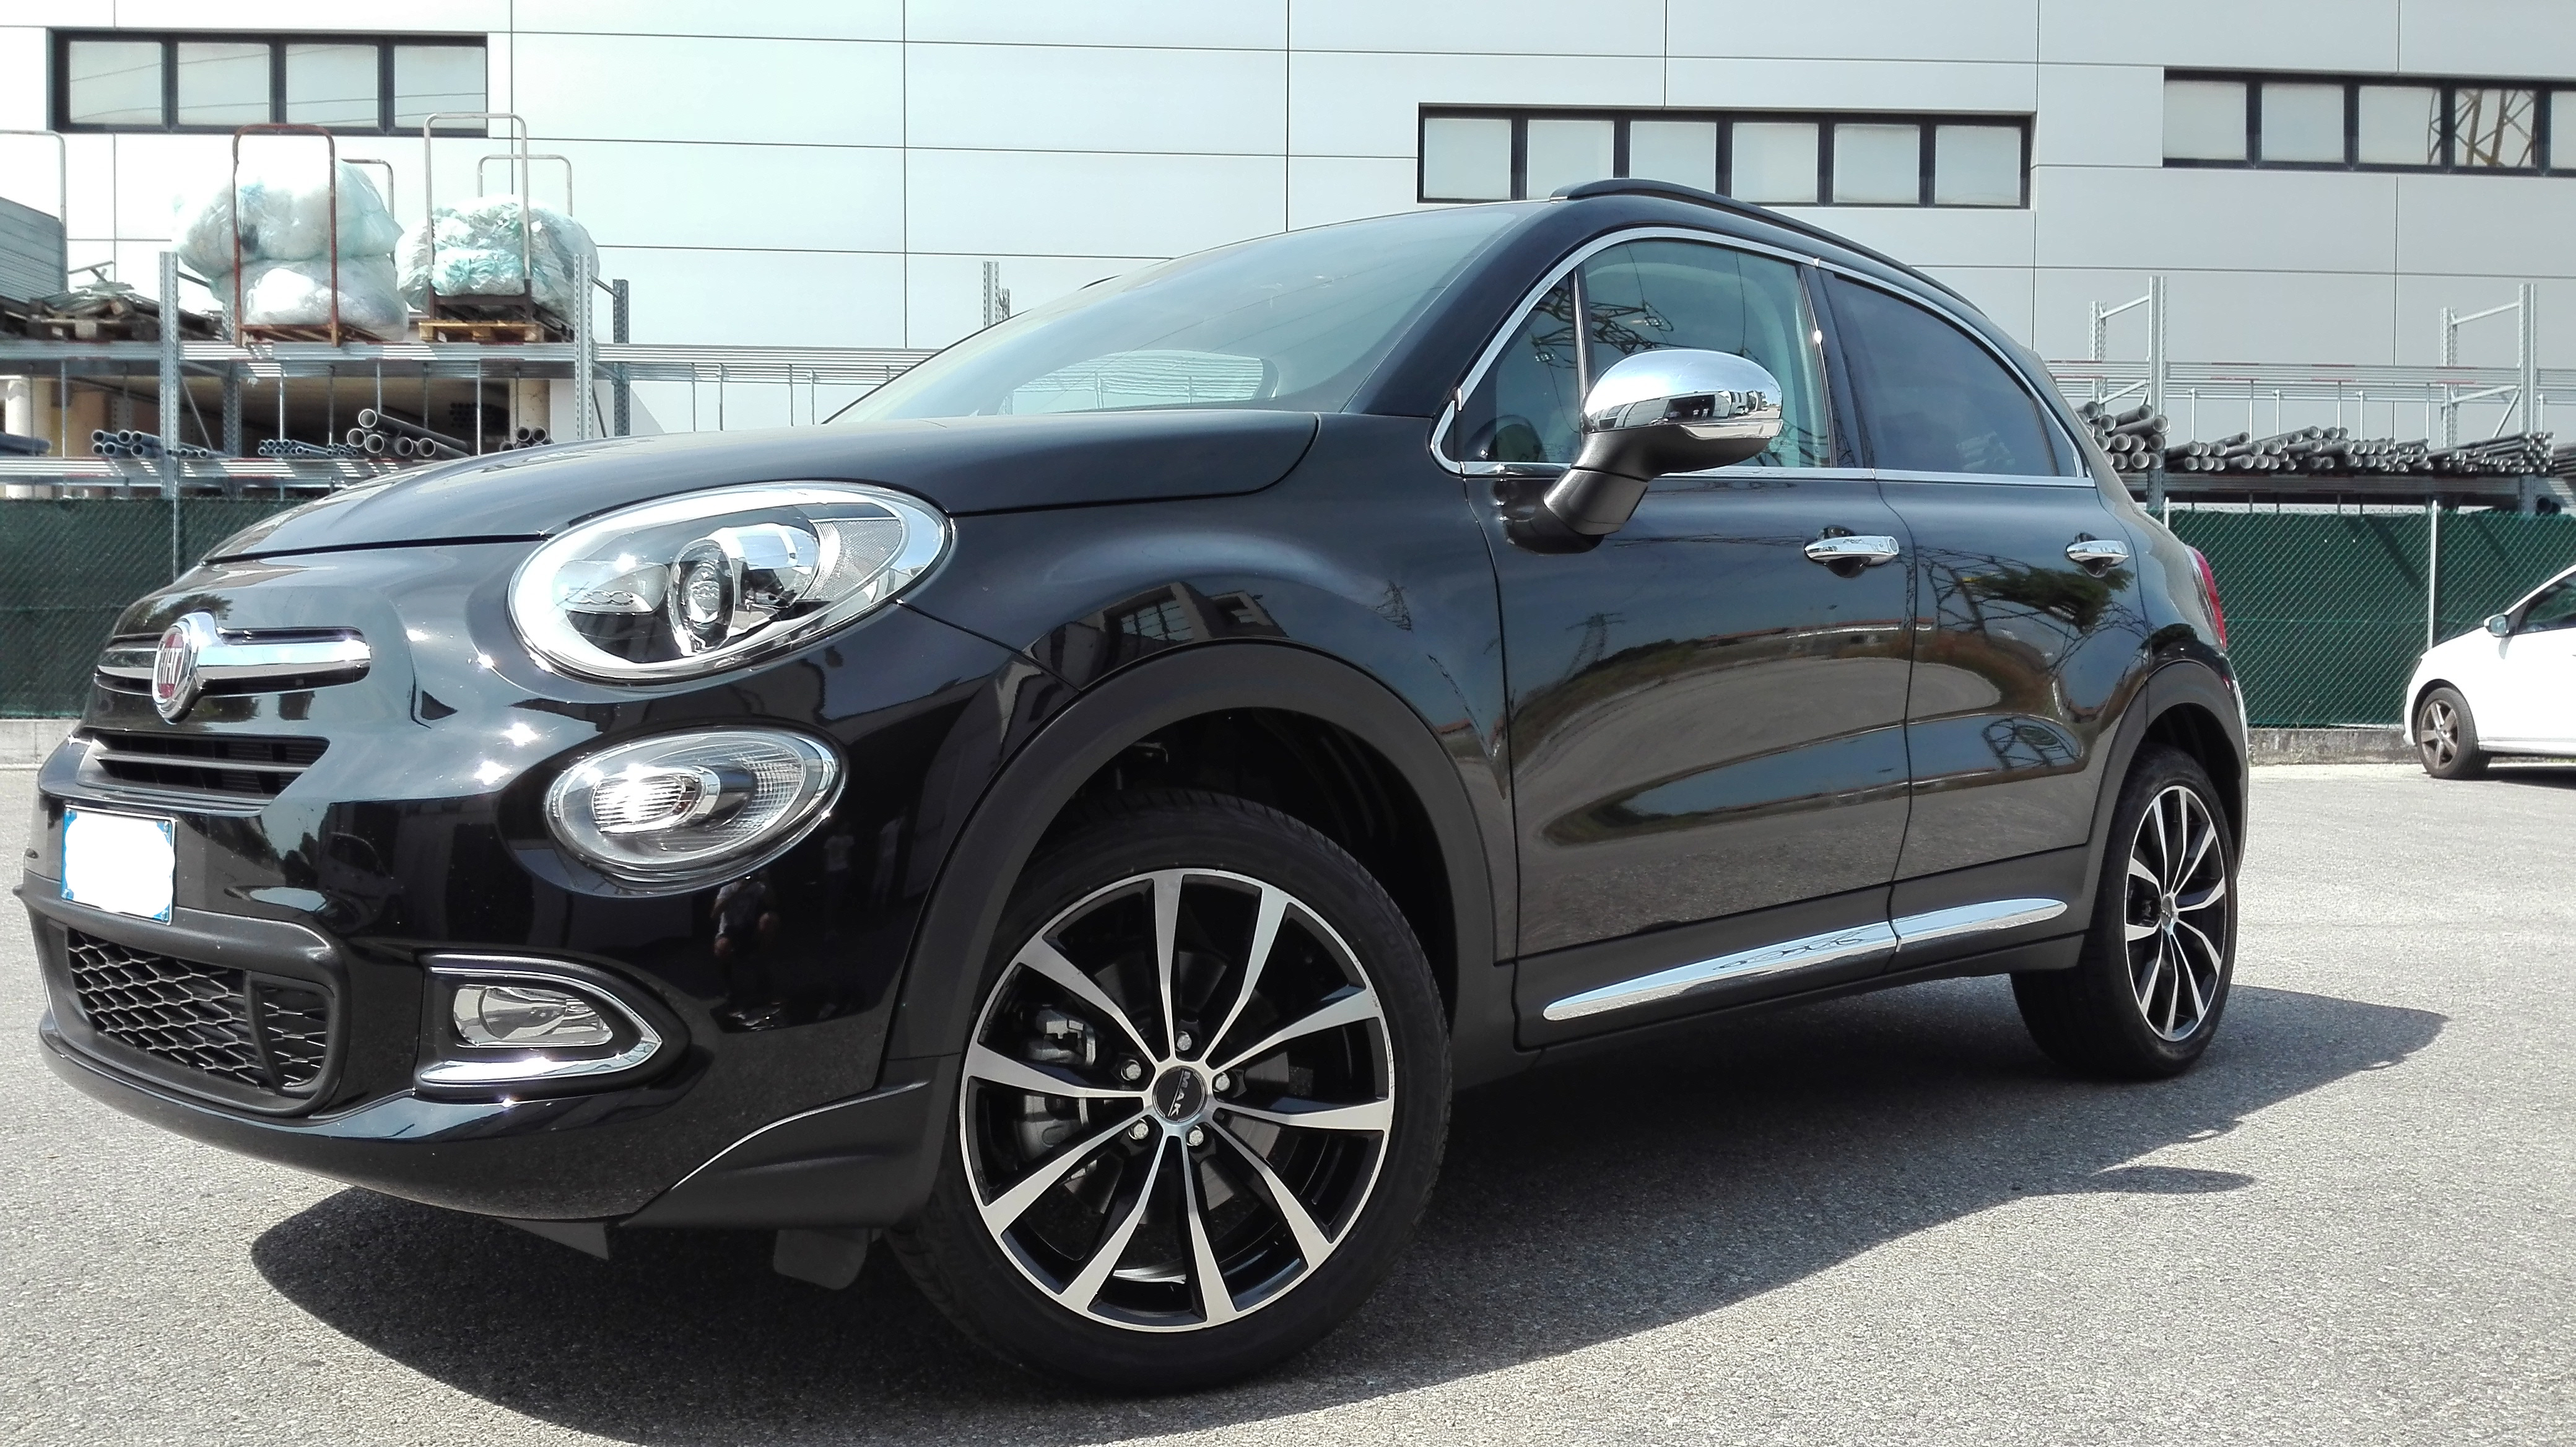 cerchi per auto cerchi mak wolf su fiat 500x. Black Bedroom Furniture Sets. Home Design Ideas